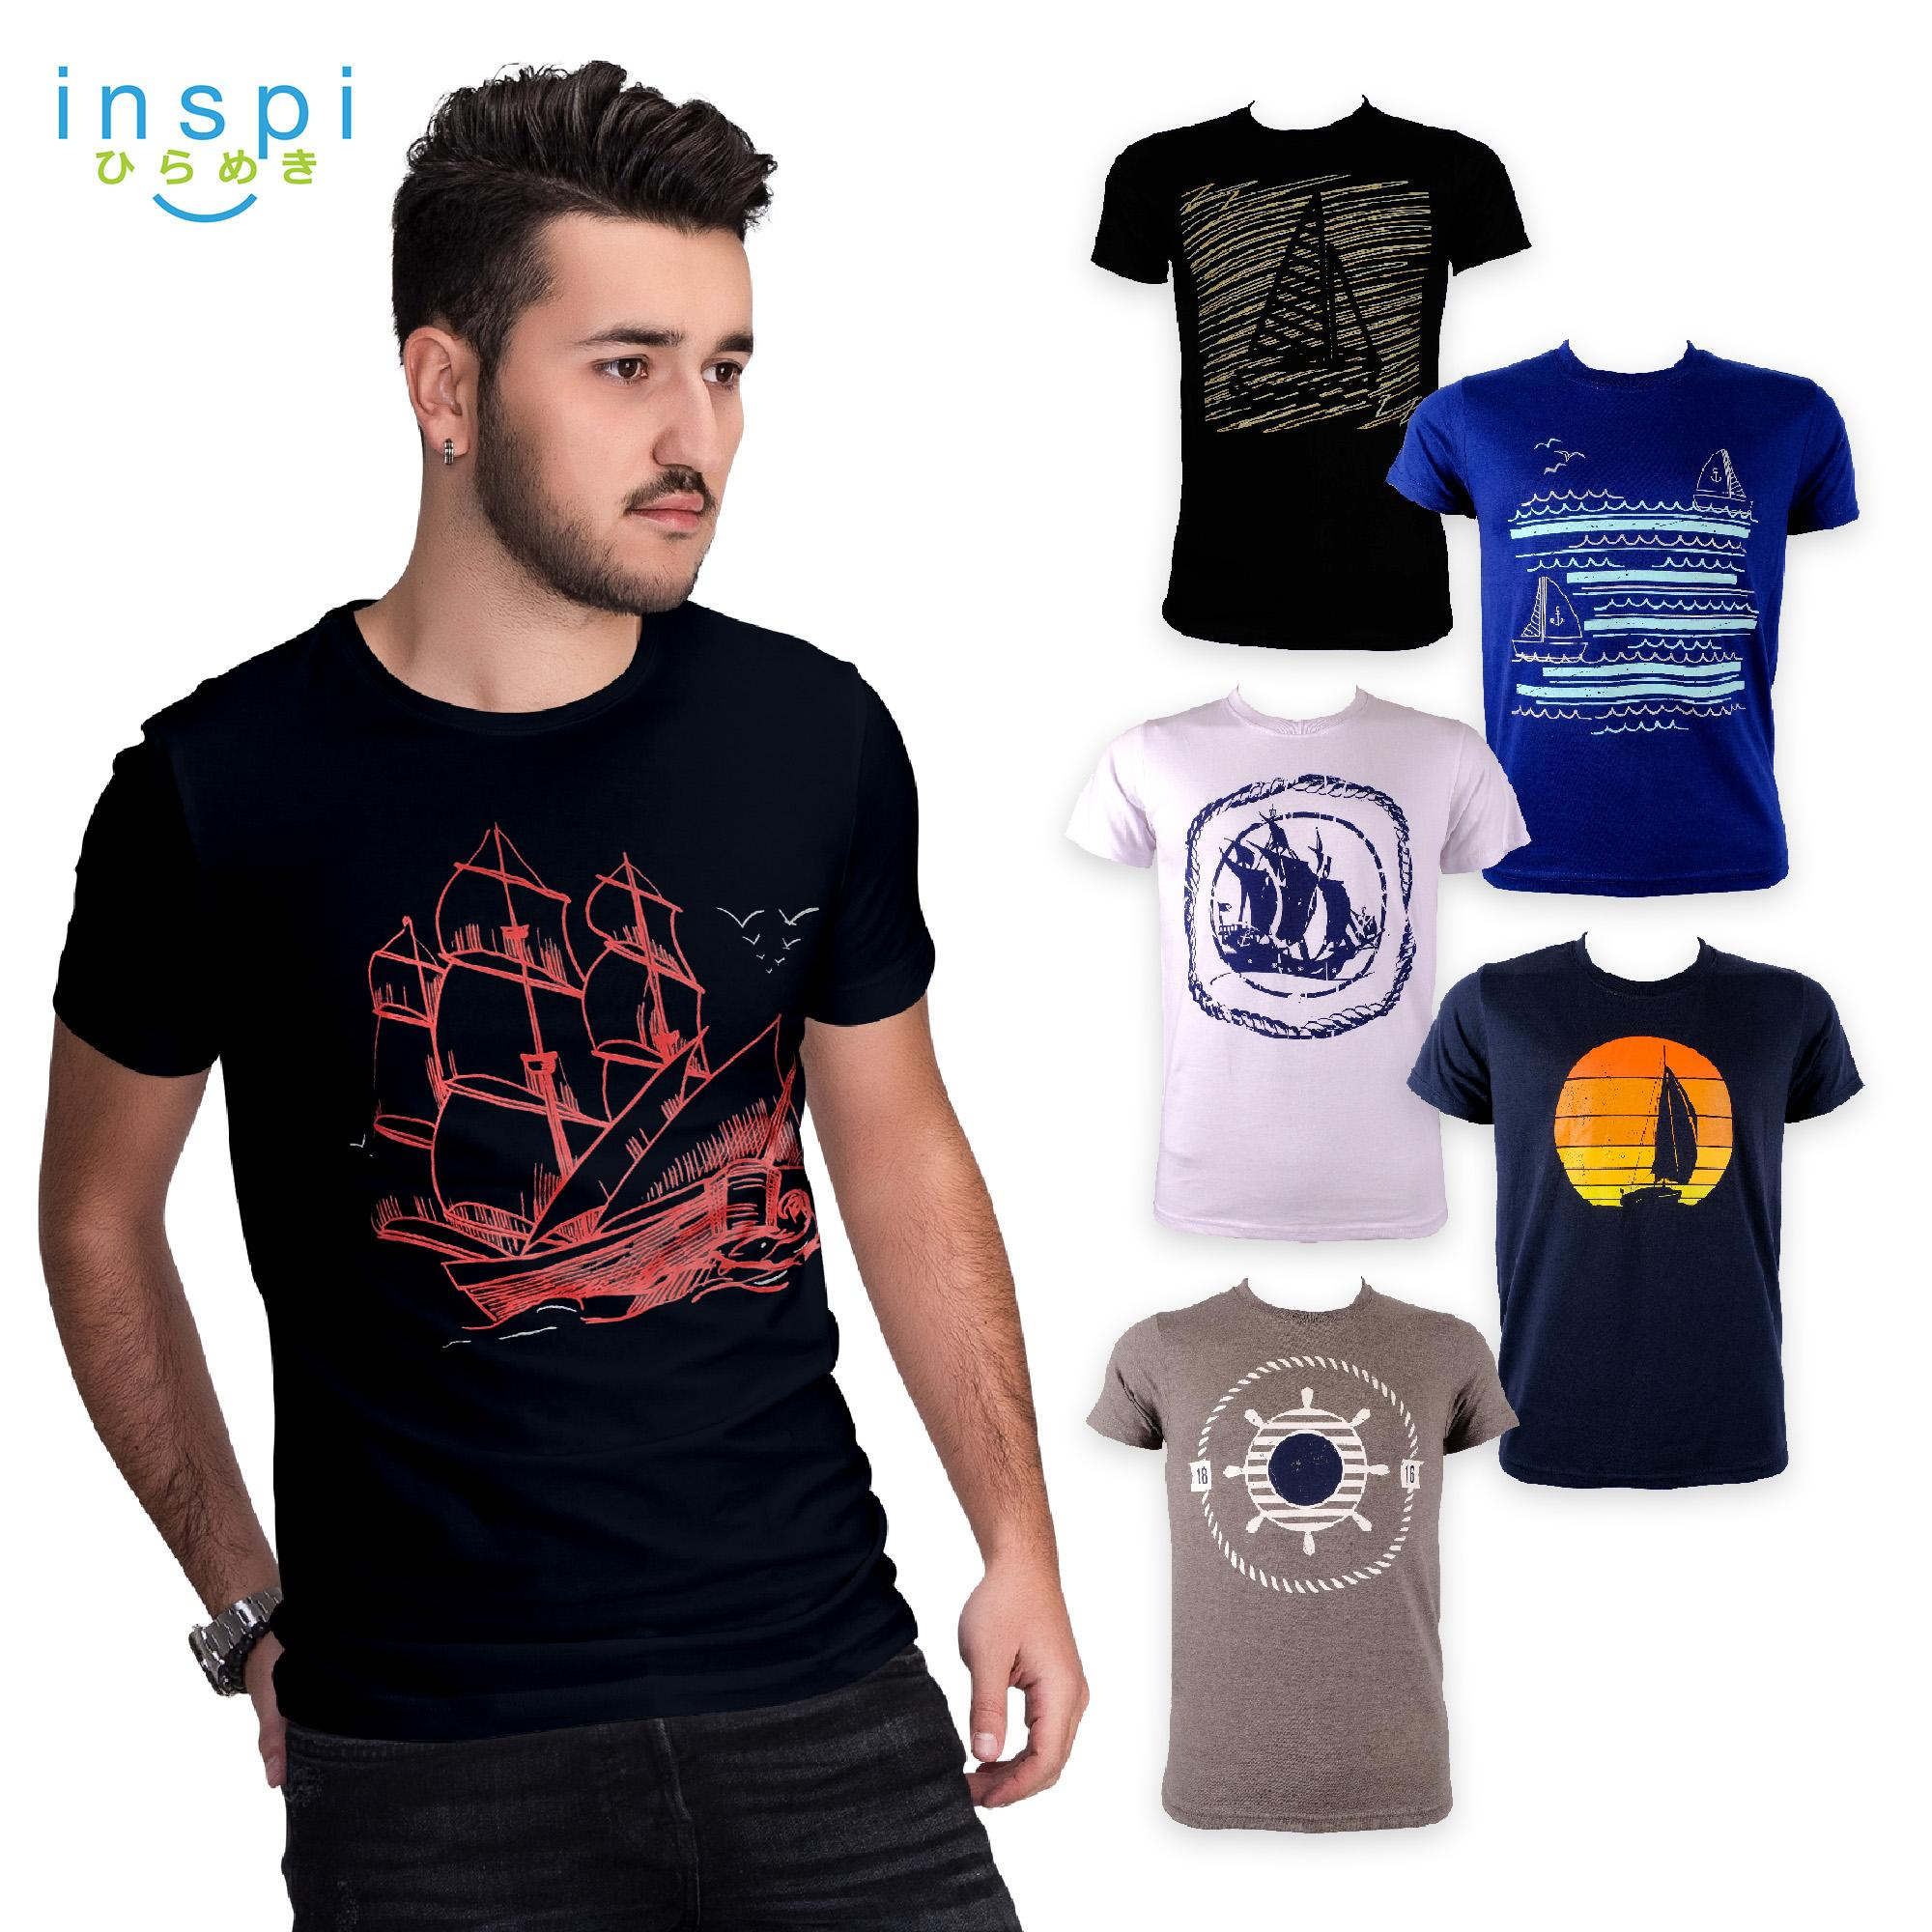 7727b51130 INSPI Tees Sailing Collection tshirt printed graphic tee Mens t shirt shirts  for men tshirts sale